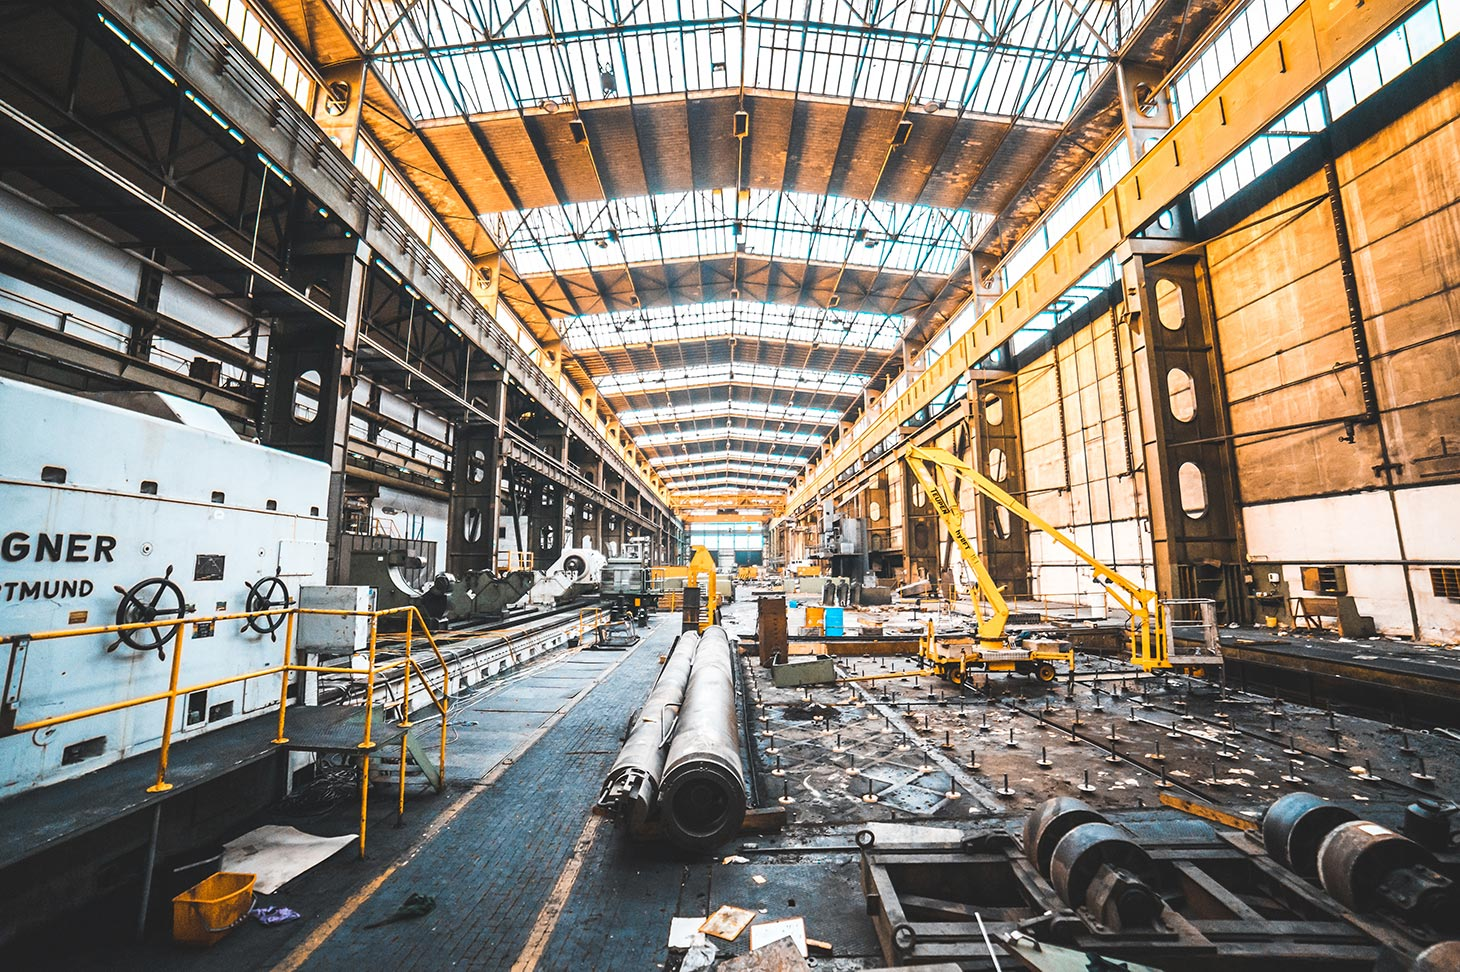 Interior of a vastly large factory